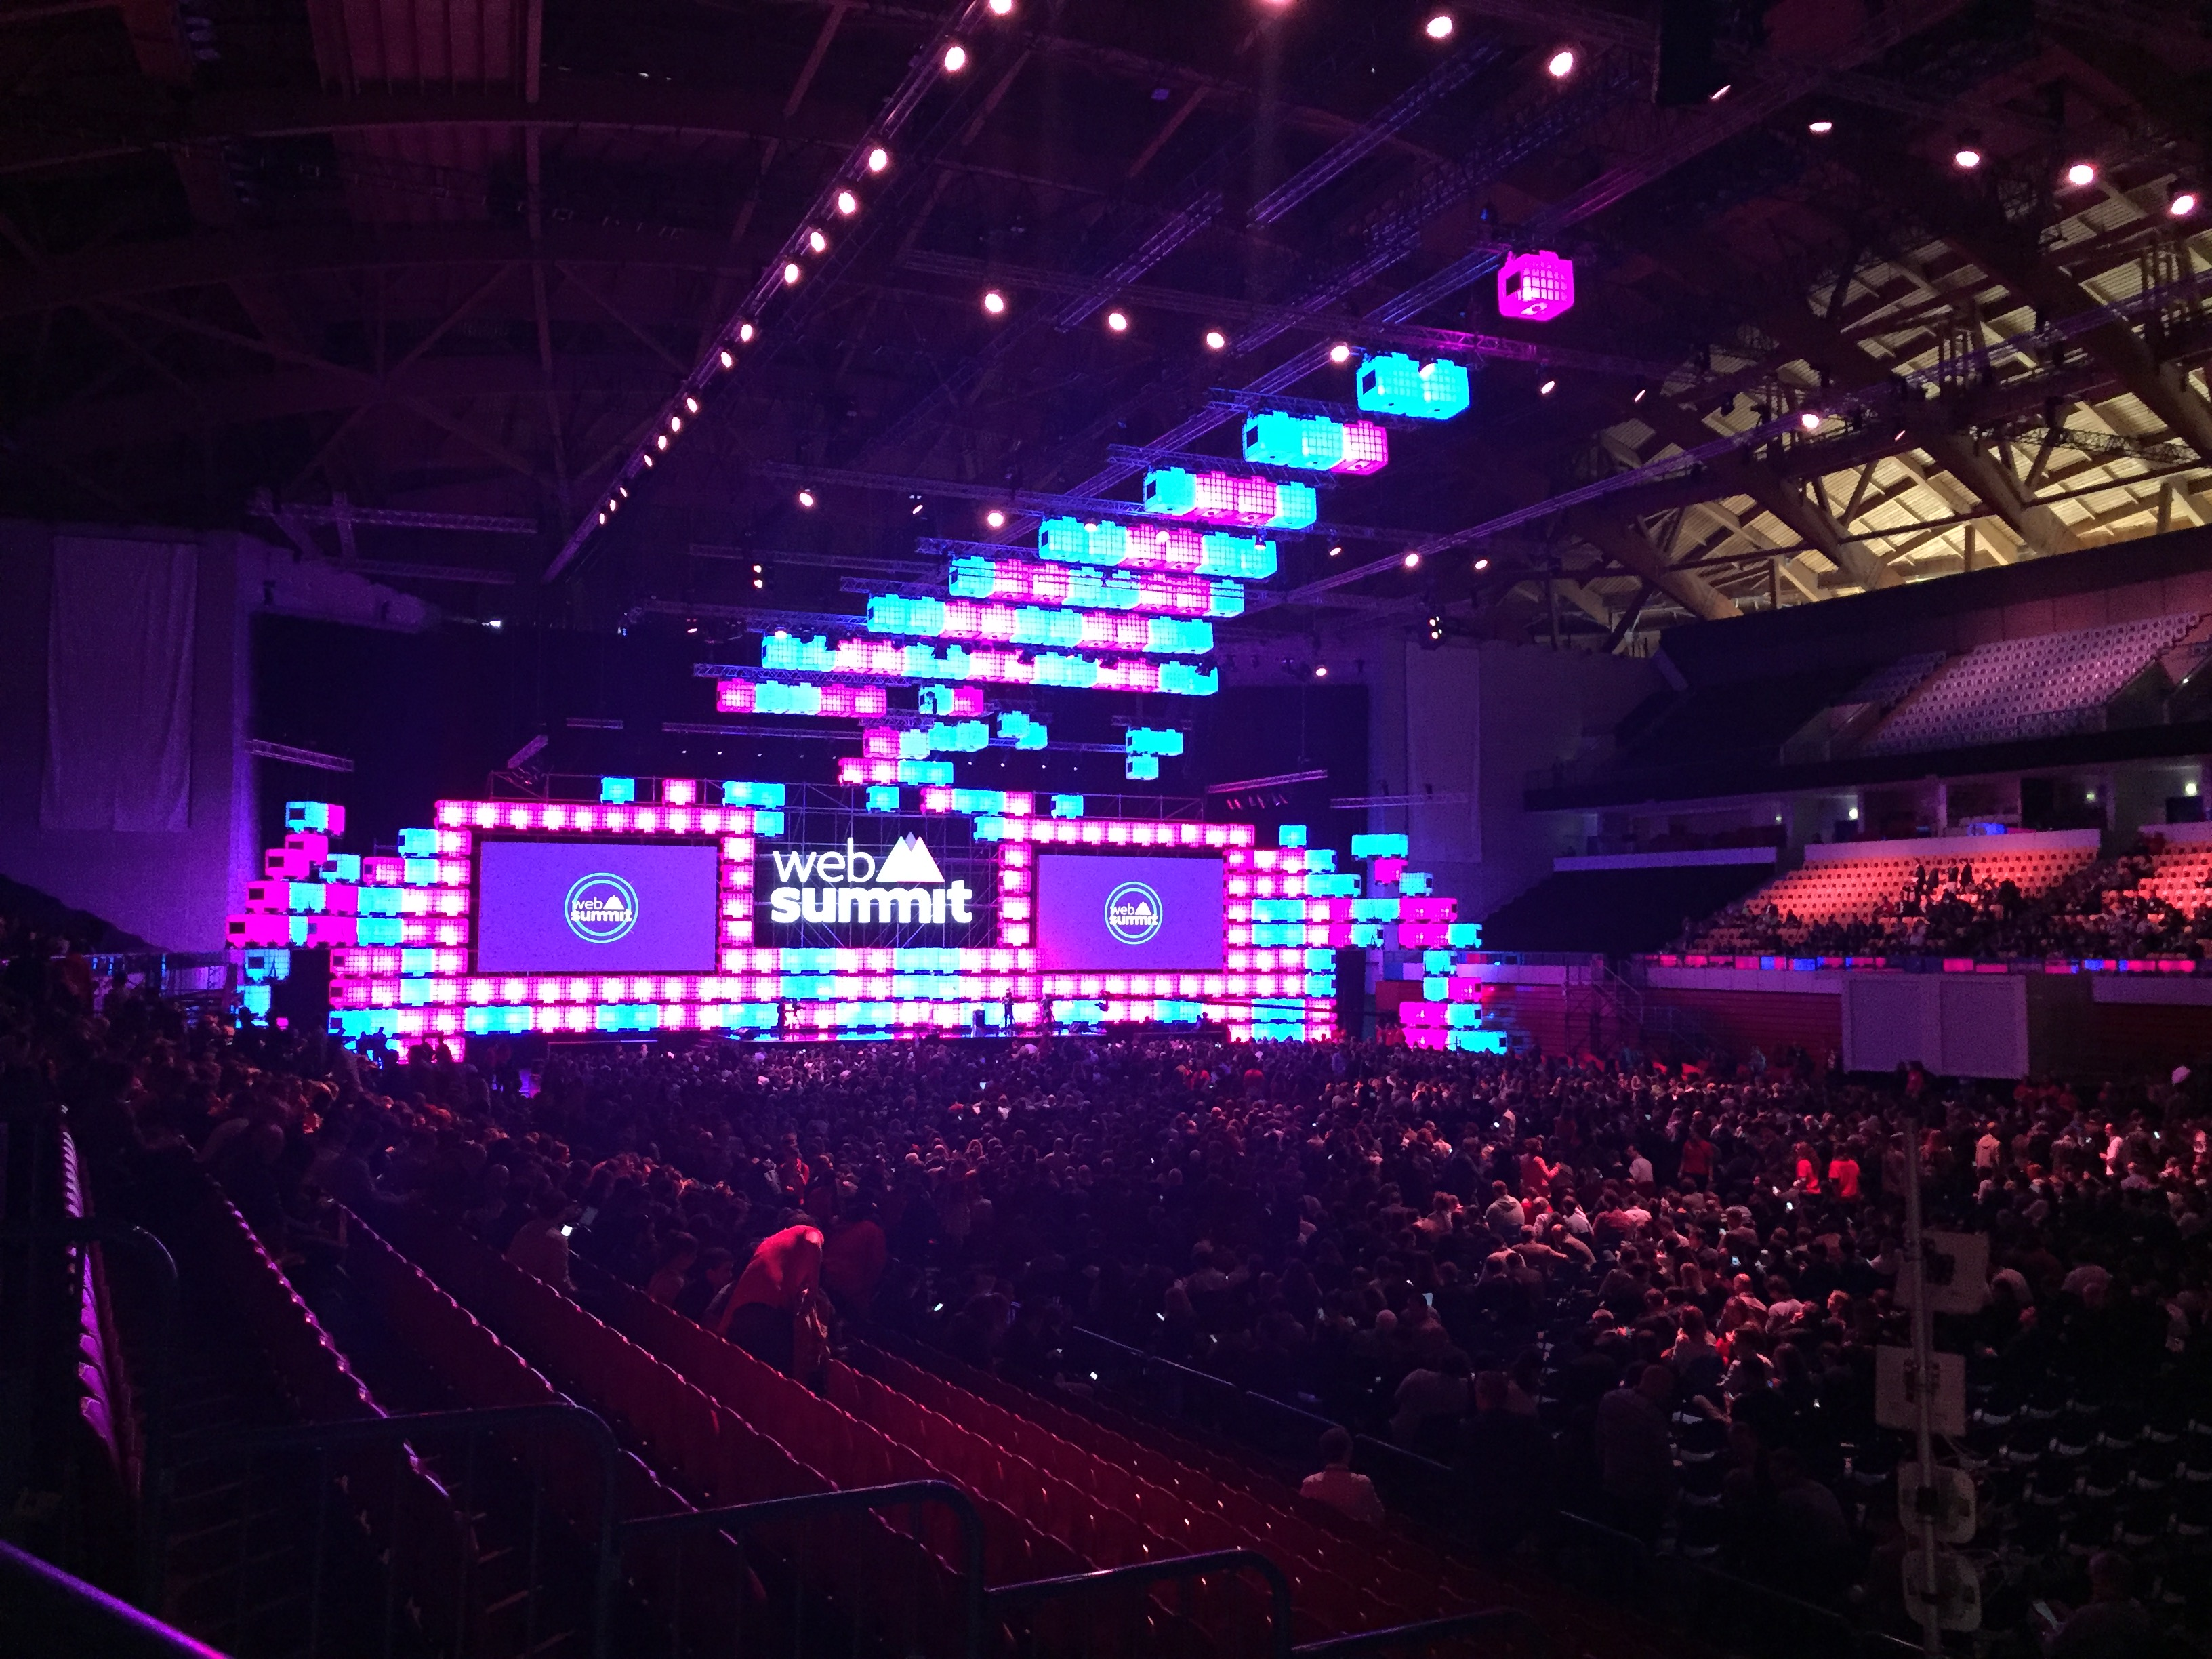 content strategy at web summit 2016